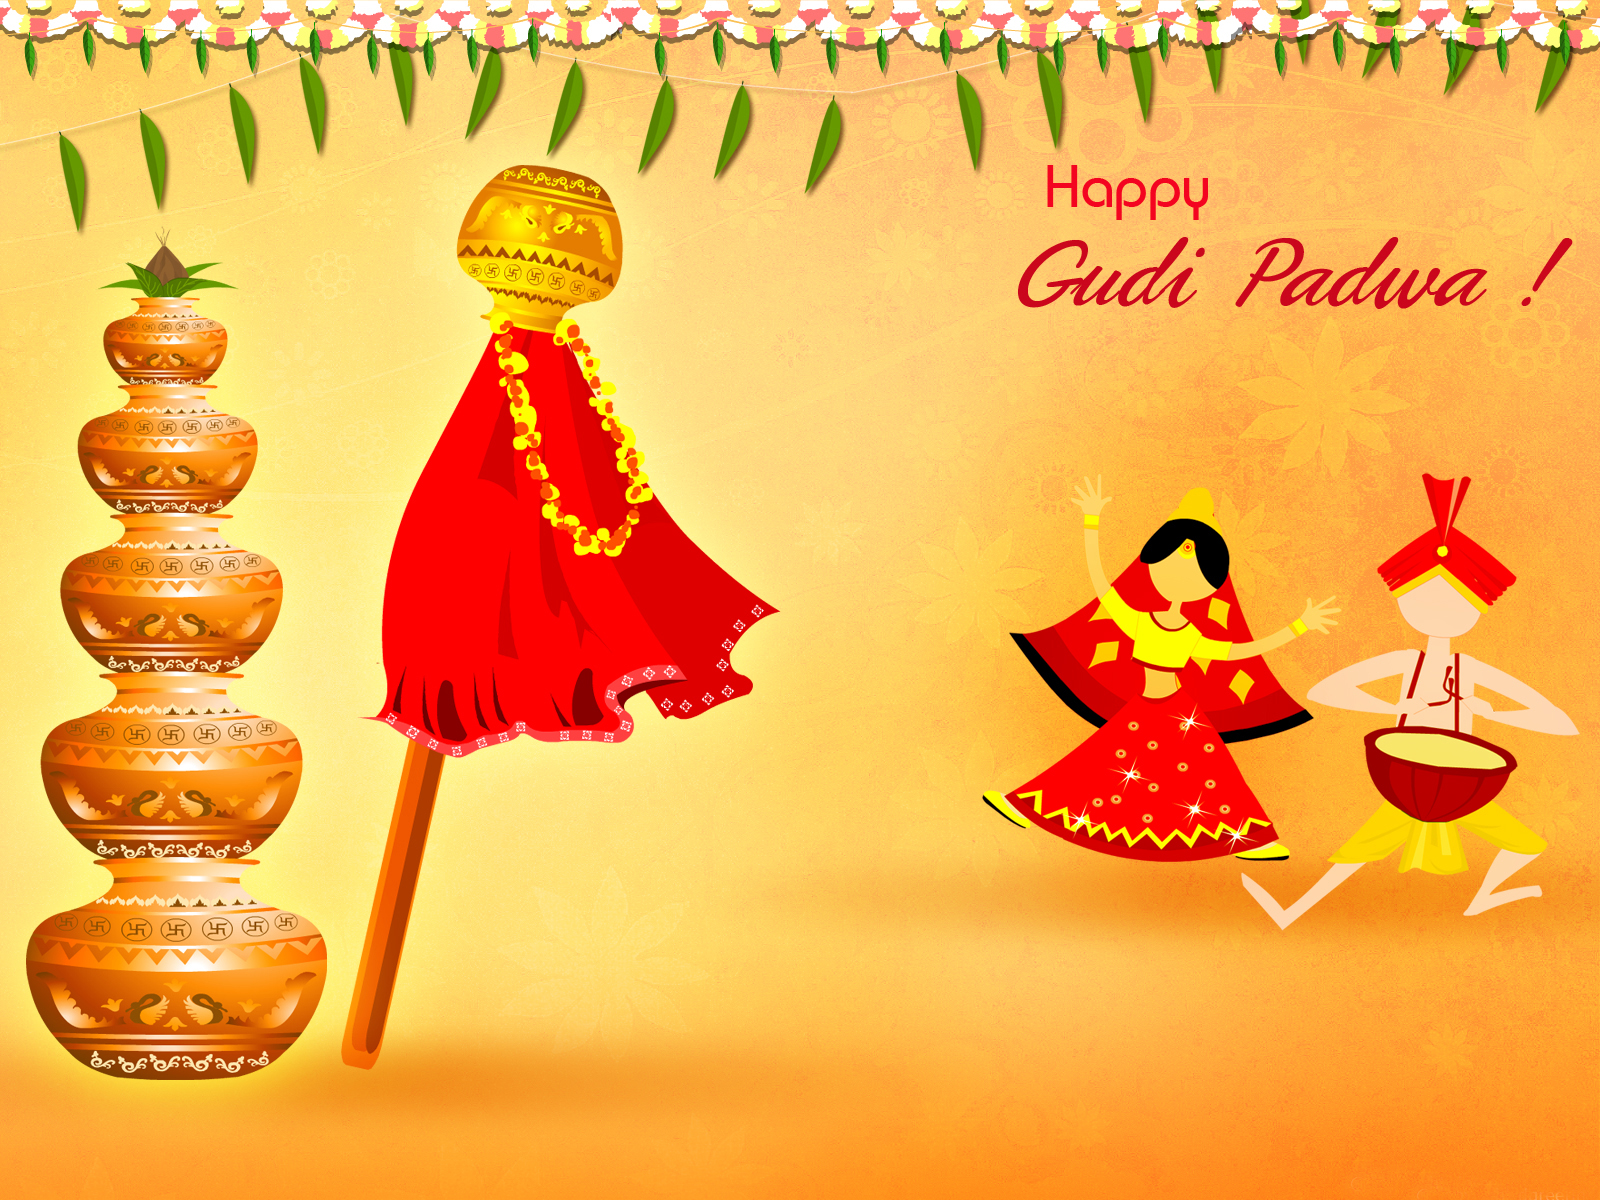 Gudi Padwa Messages Wallpapers